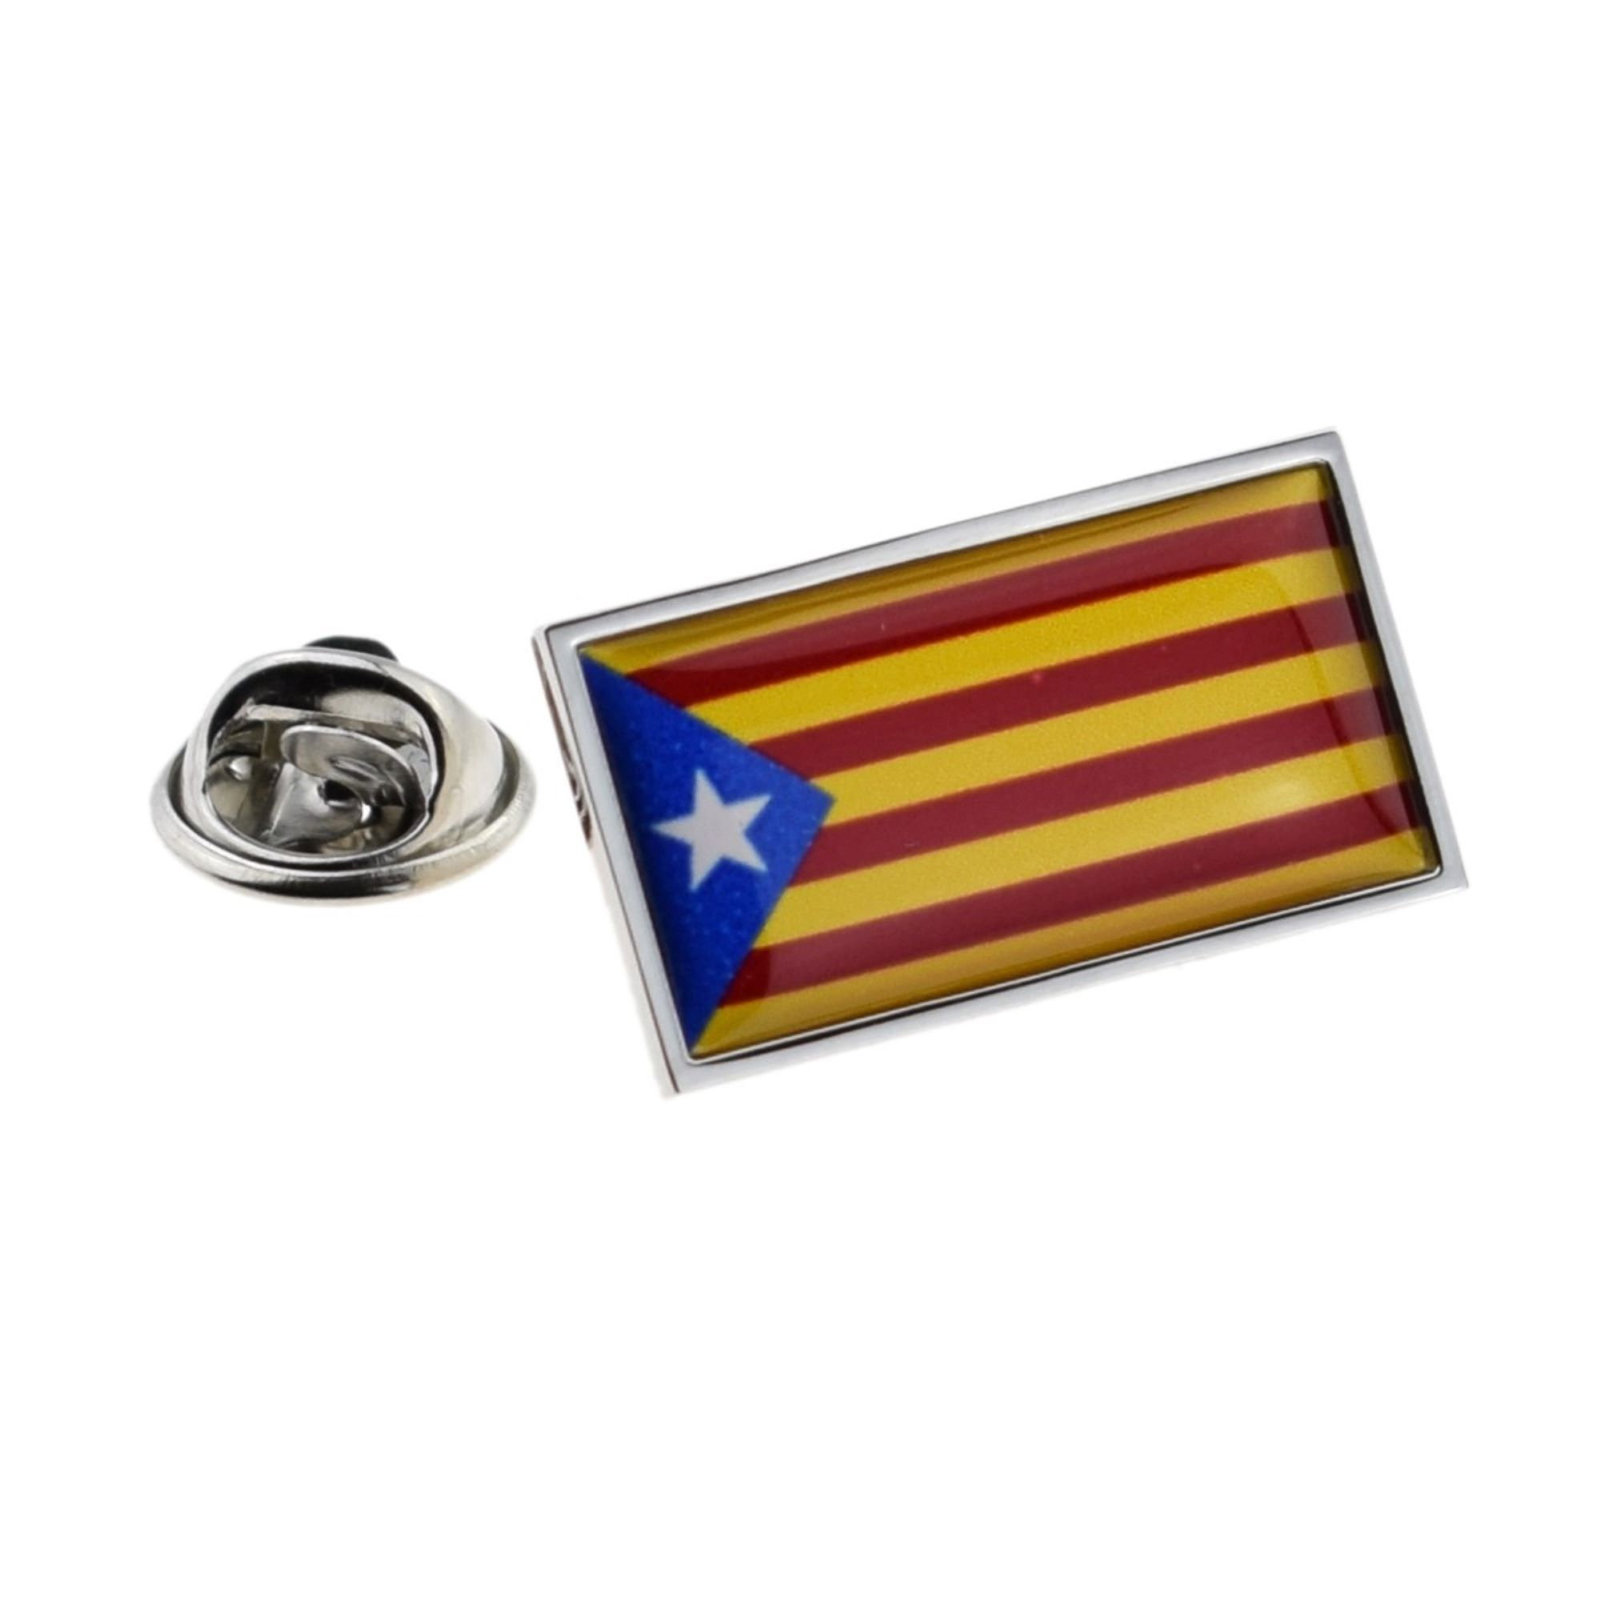 Catalonia Flag Flag  lapel pin  handmade in uk from uk made parts, boxed tie,lap